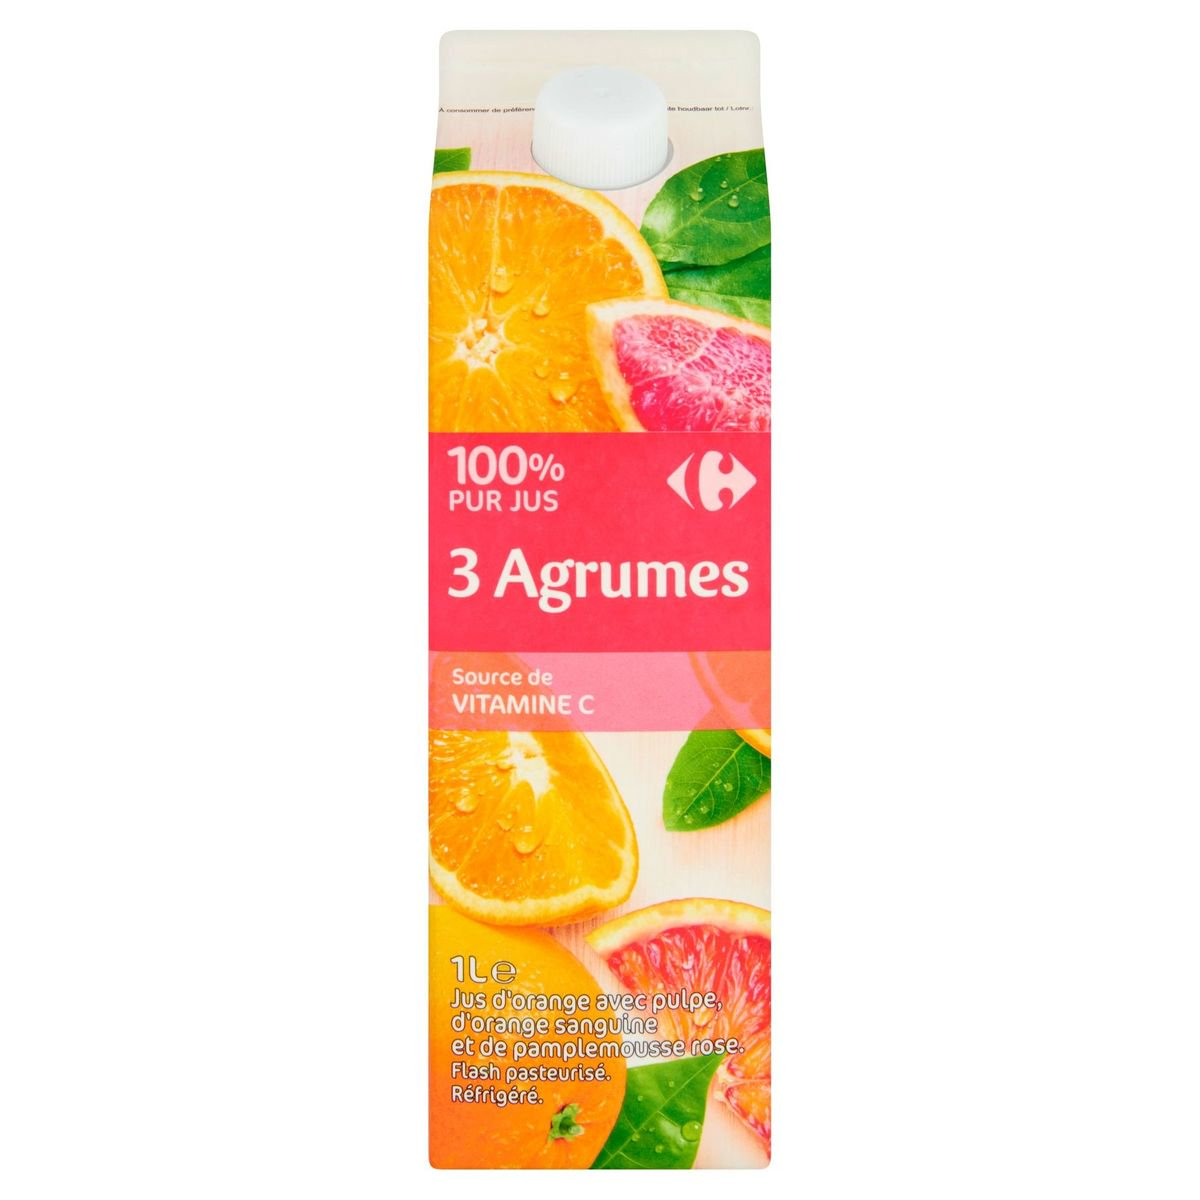 Carrefour 100% Pur Jus 3 Agrumes 1 L